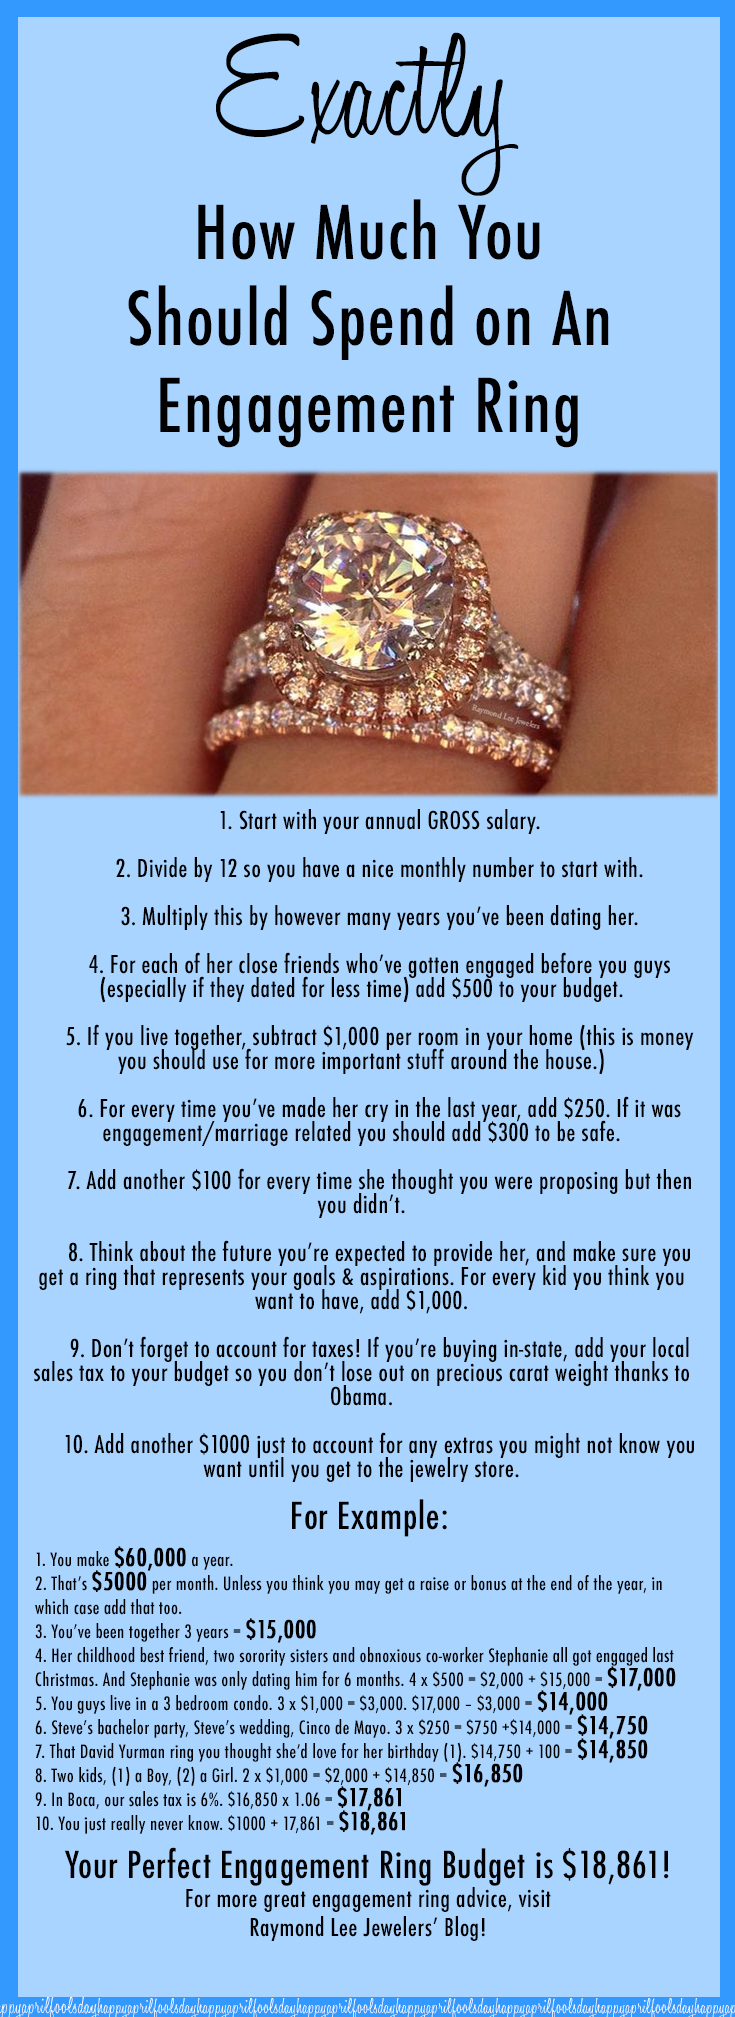 Exactly How Much To Spend On An Engagement Ring